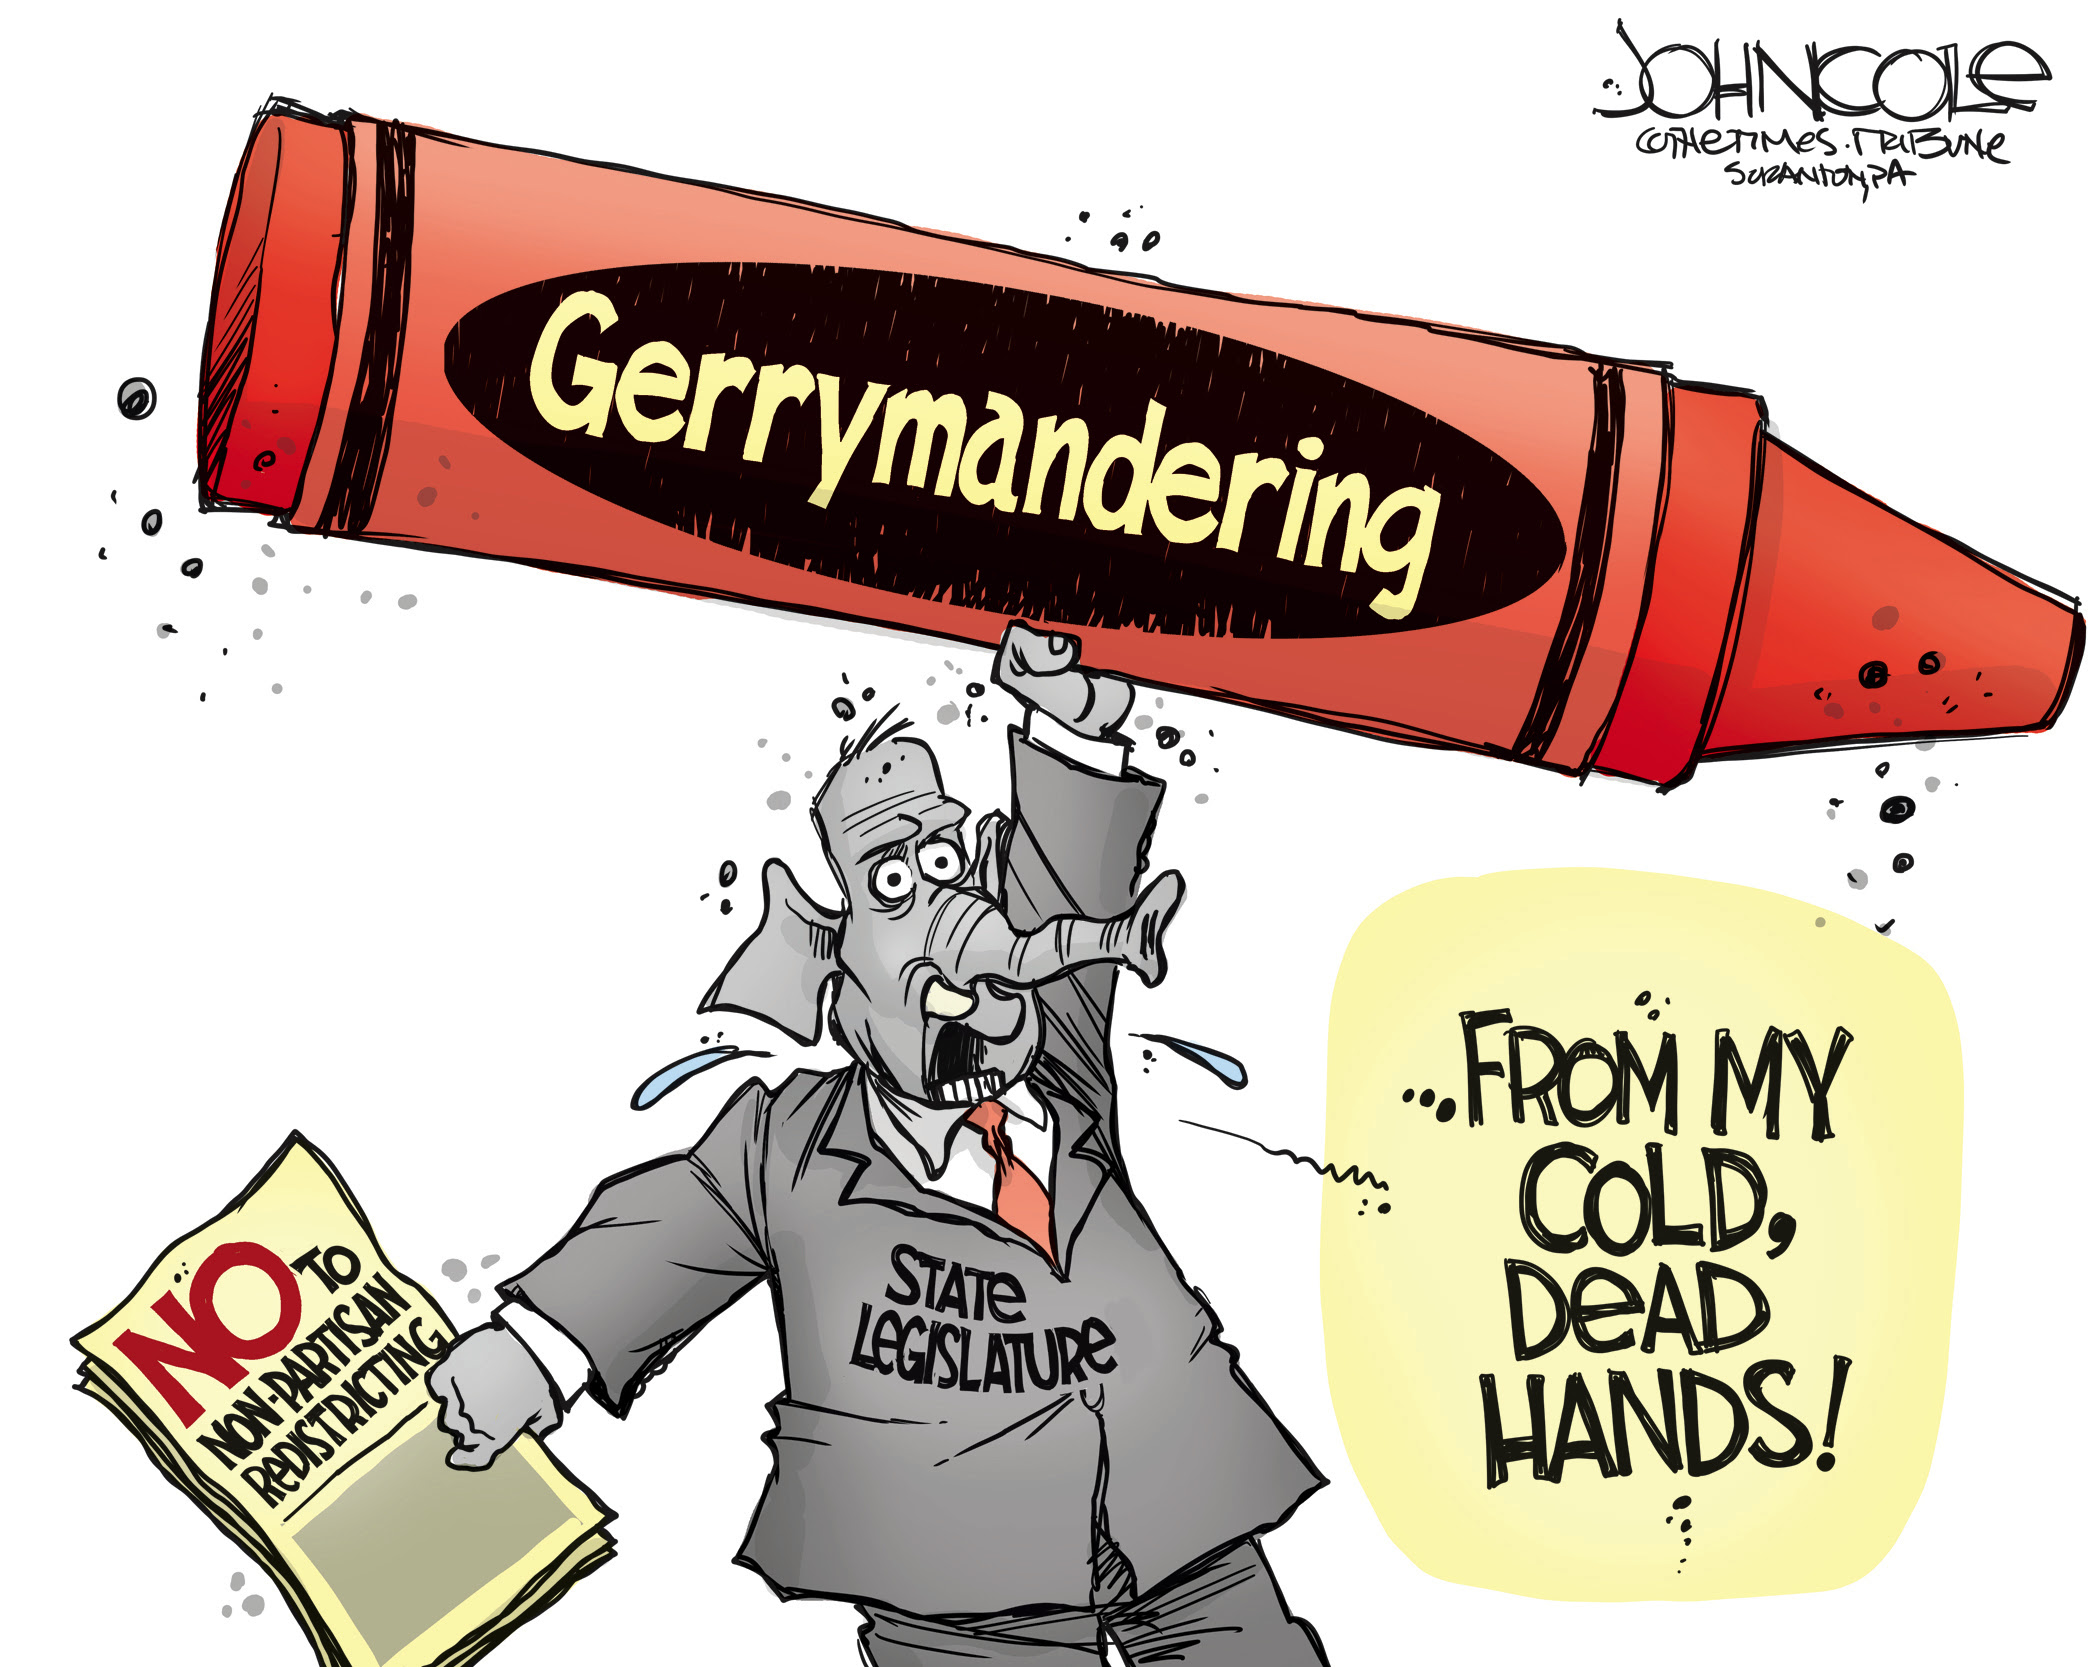 Republicans rely on gerrymandering to cling to power.